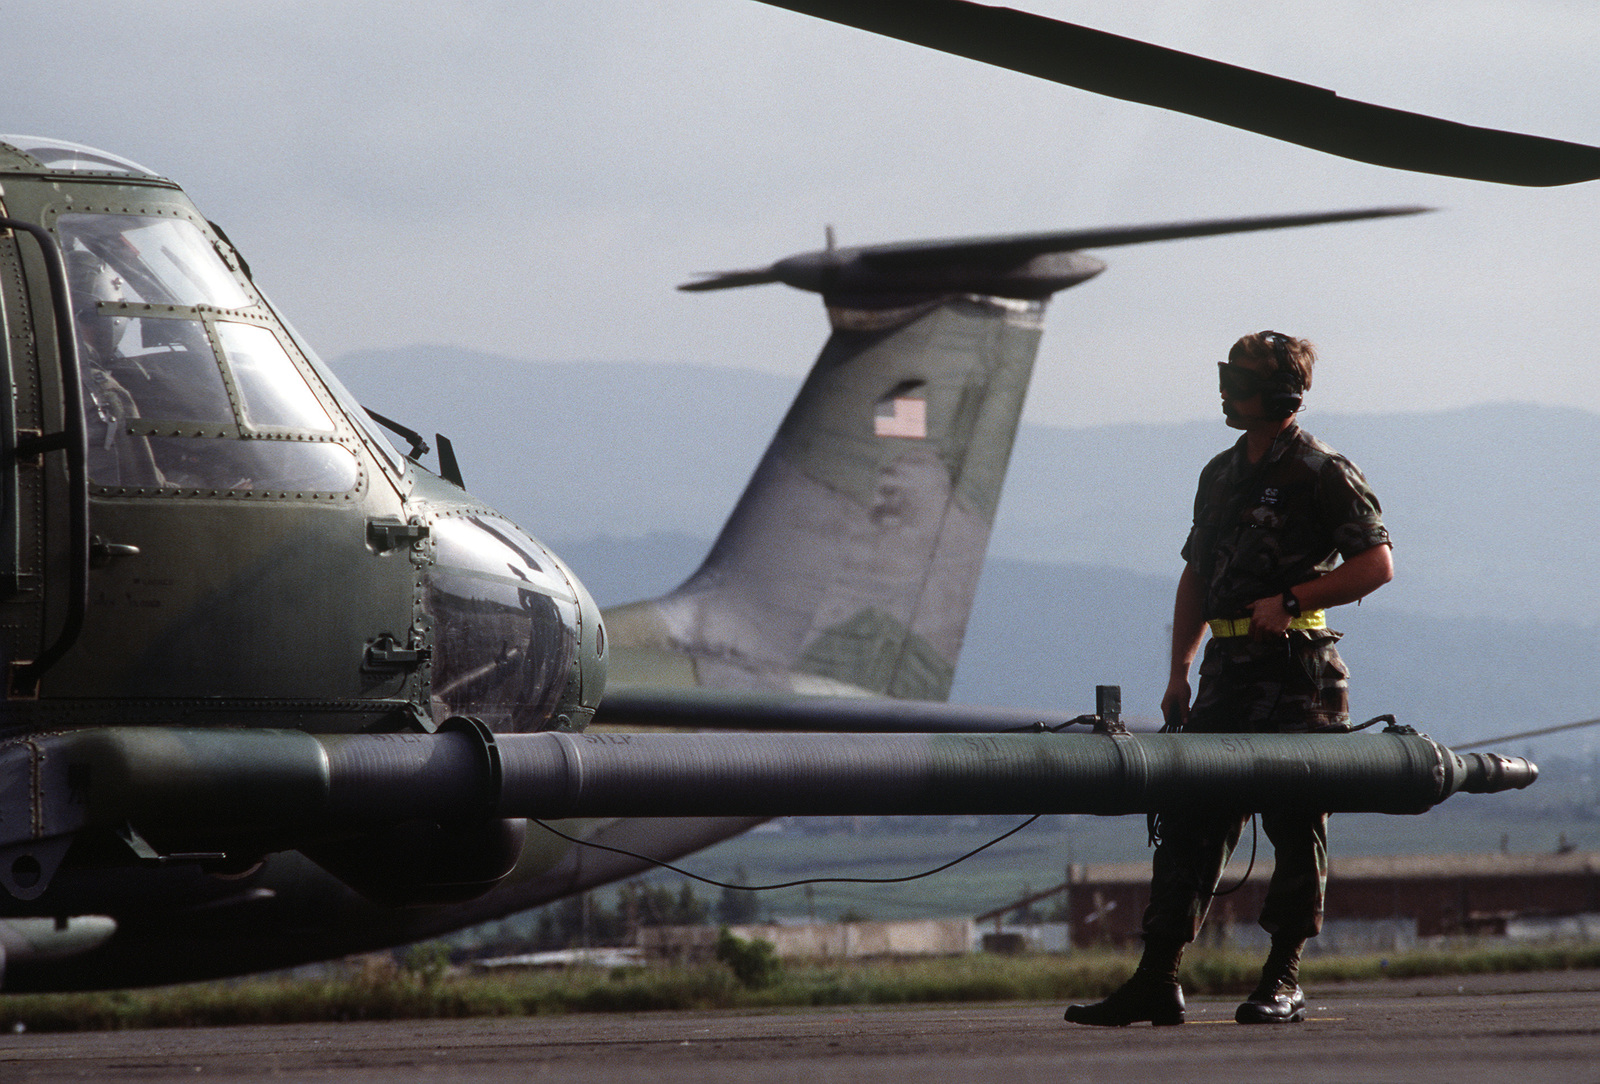 A ground crew member stands by a 55th Special Operations